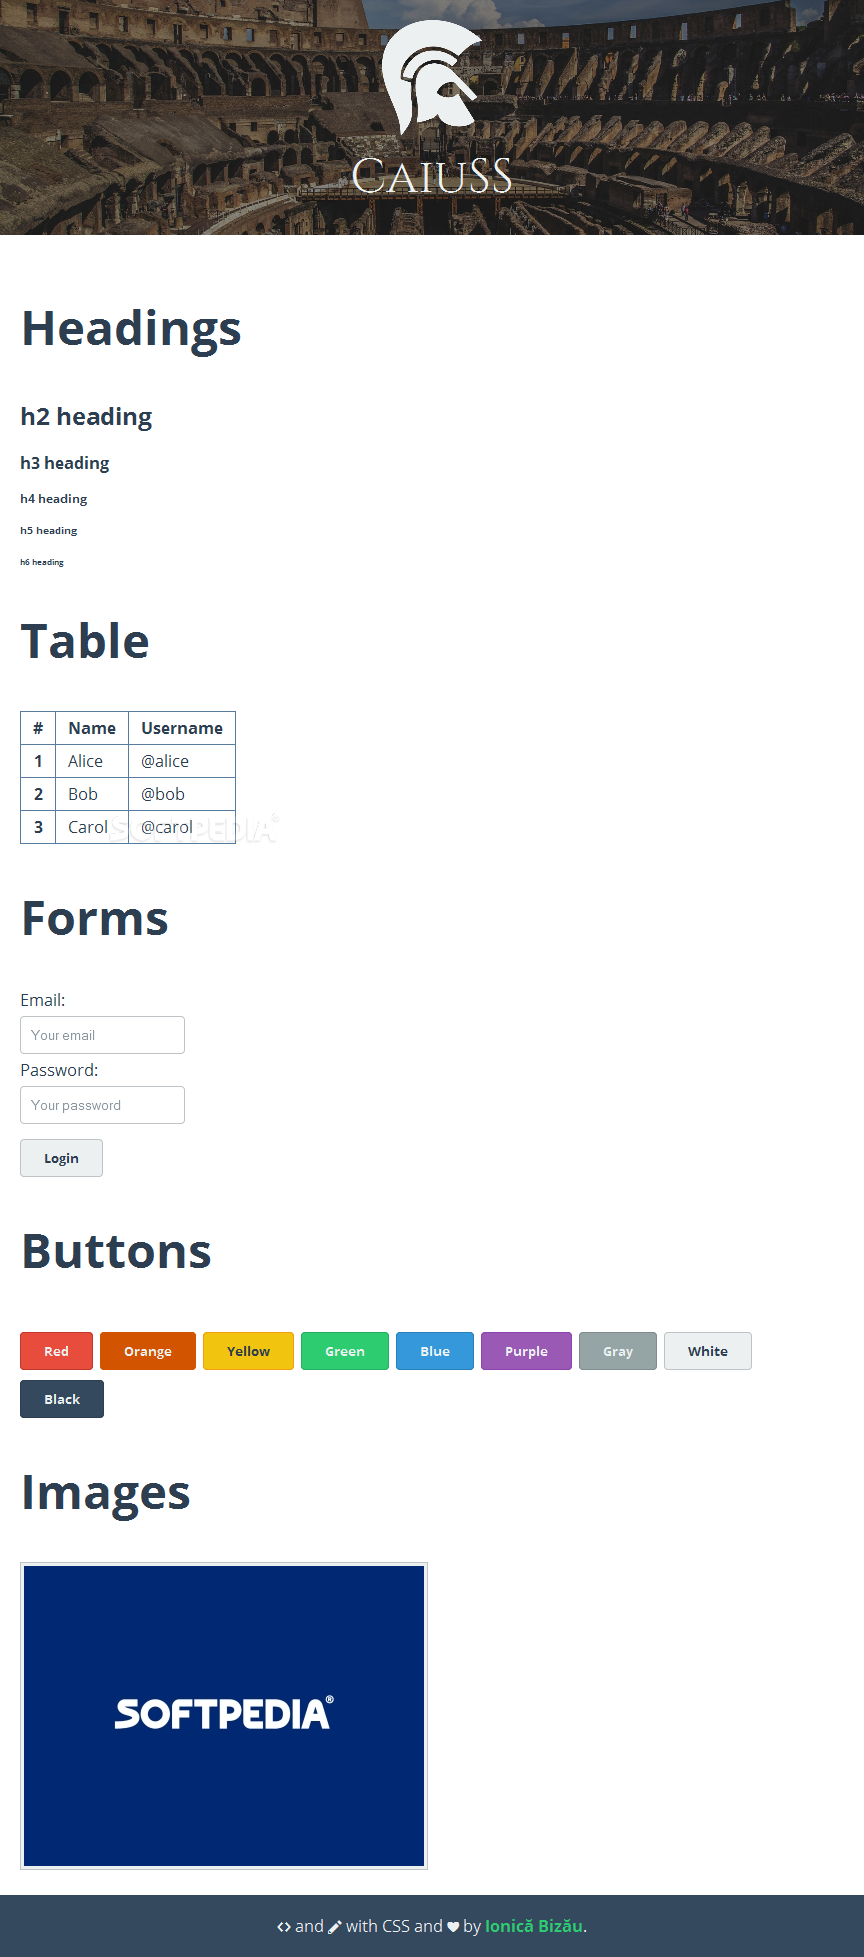 CaiuSS - CaiuSS will help you setup simple Web pages if you're in a rush